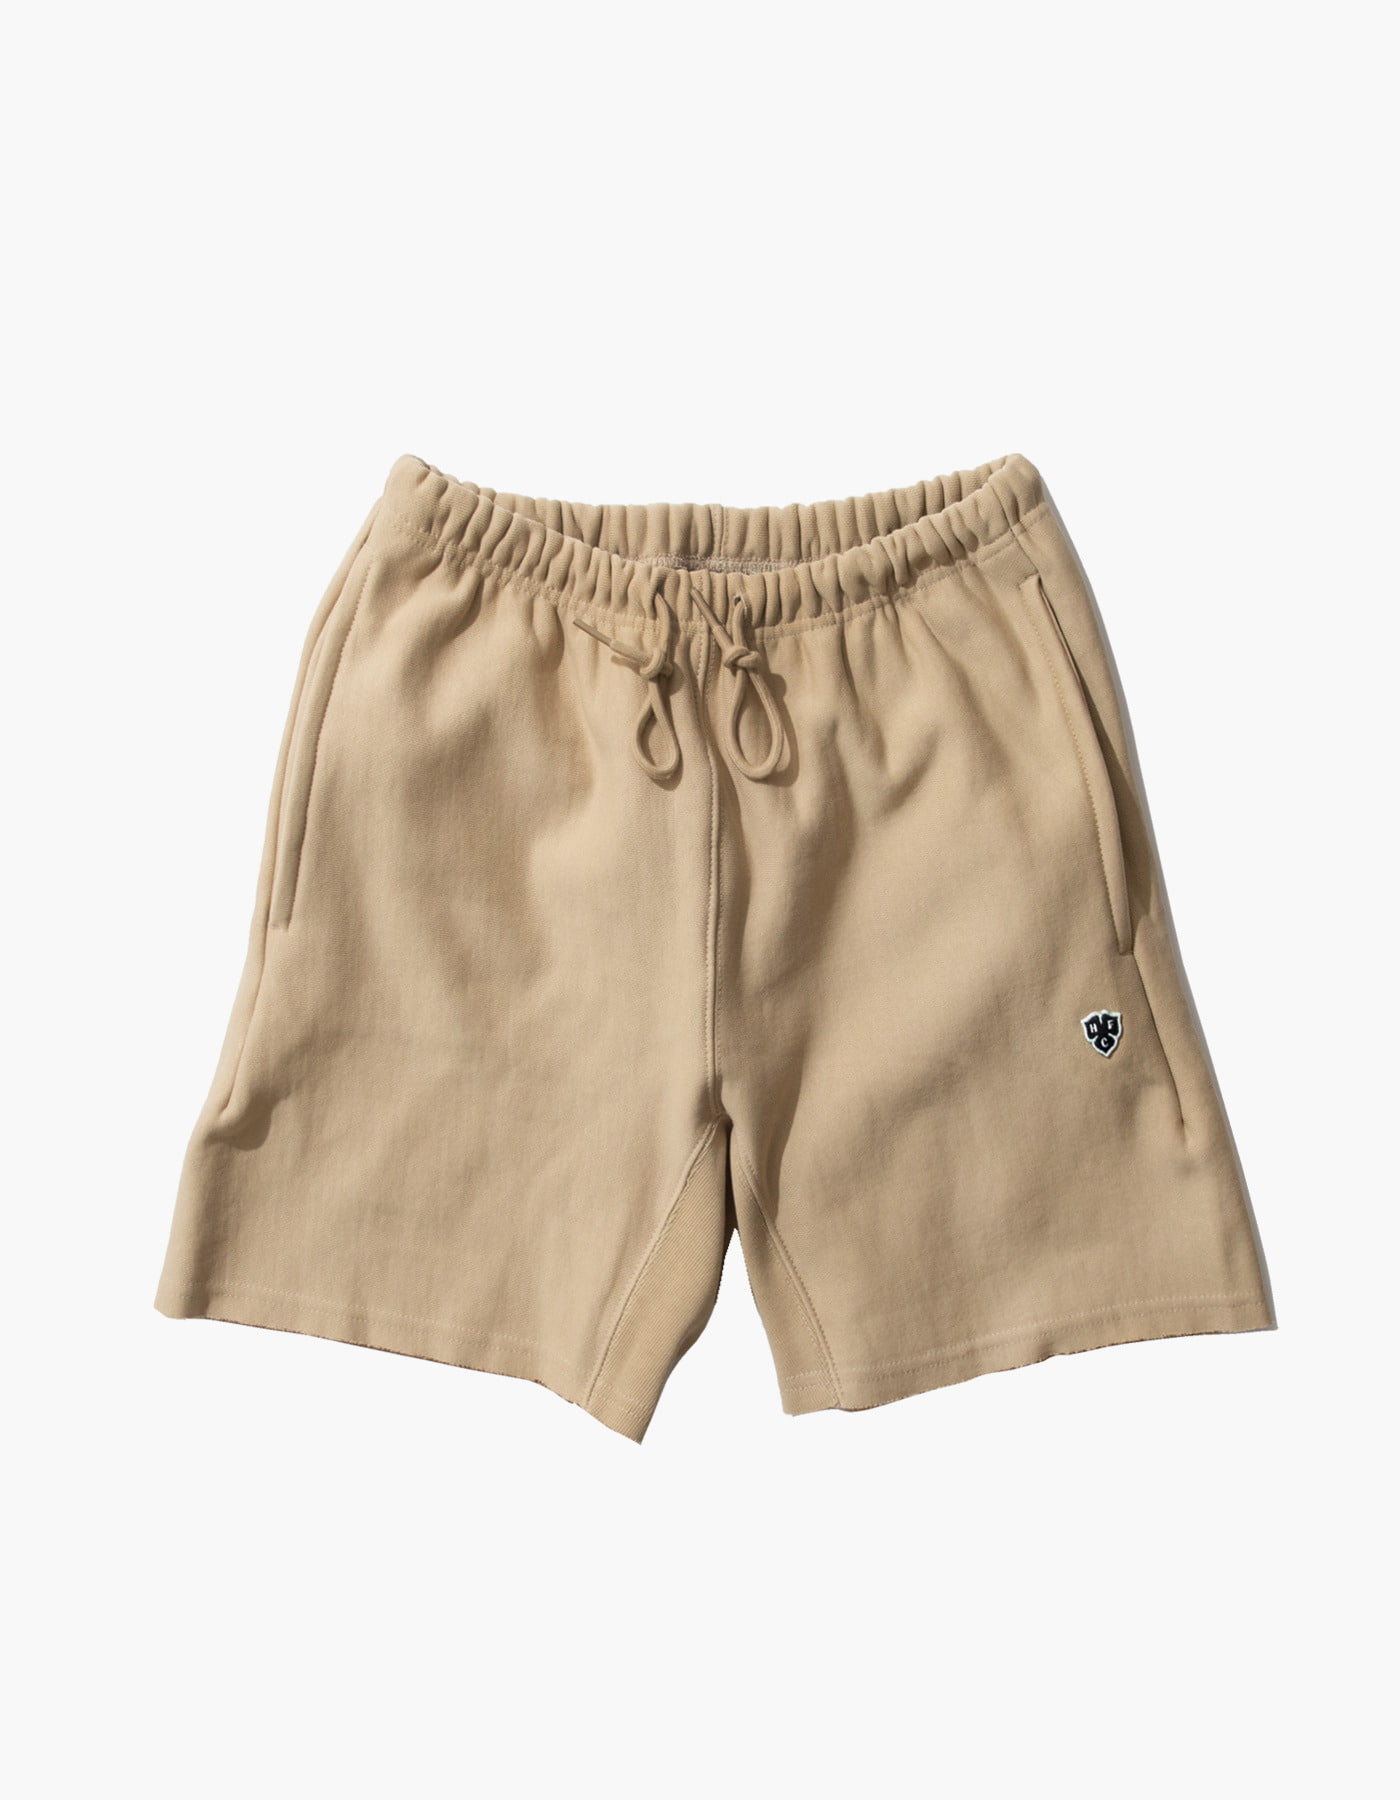 321 GYM SHORTS / BEIGE